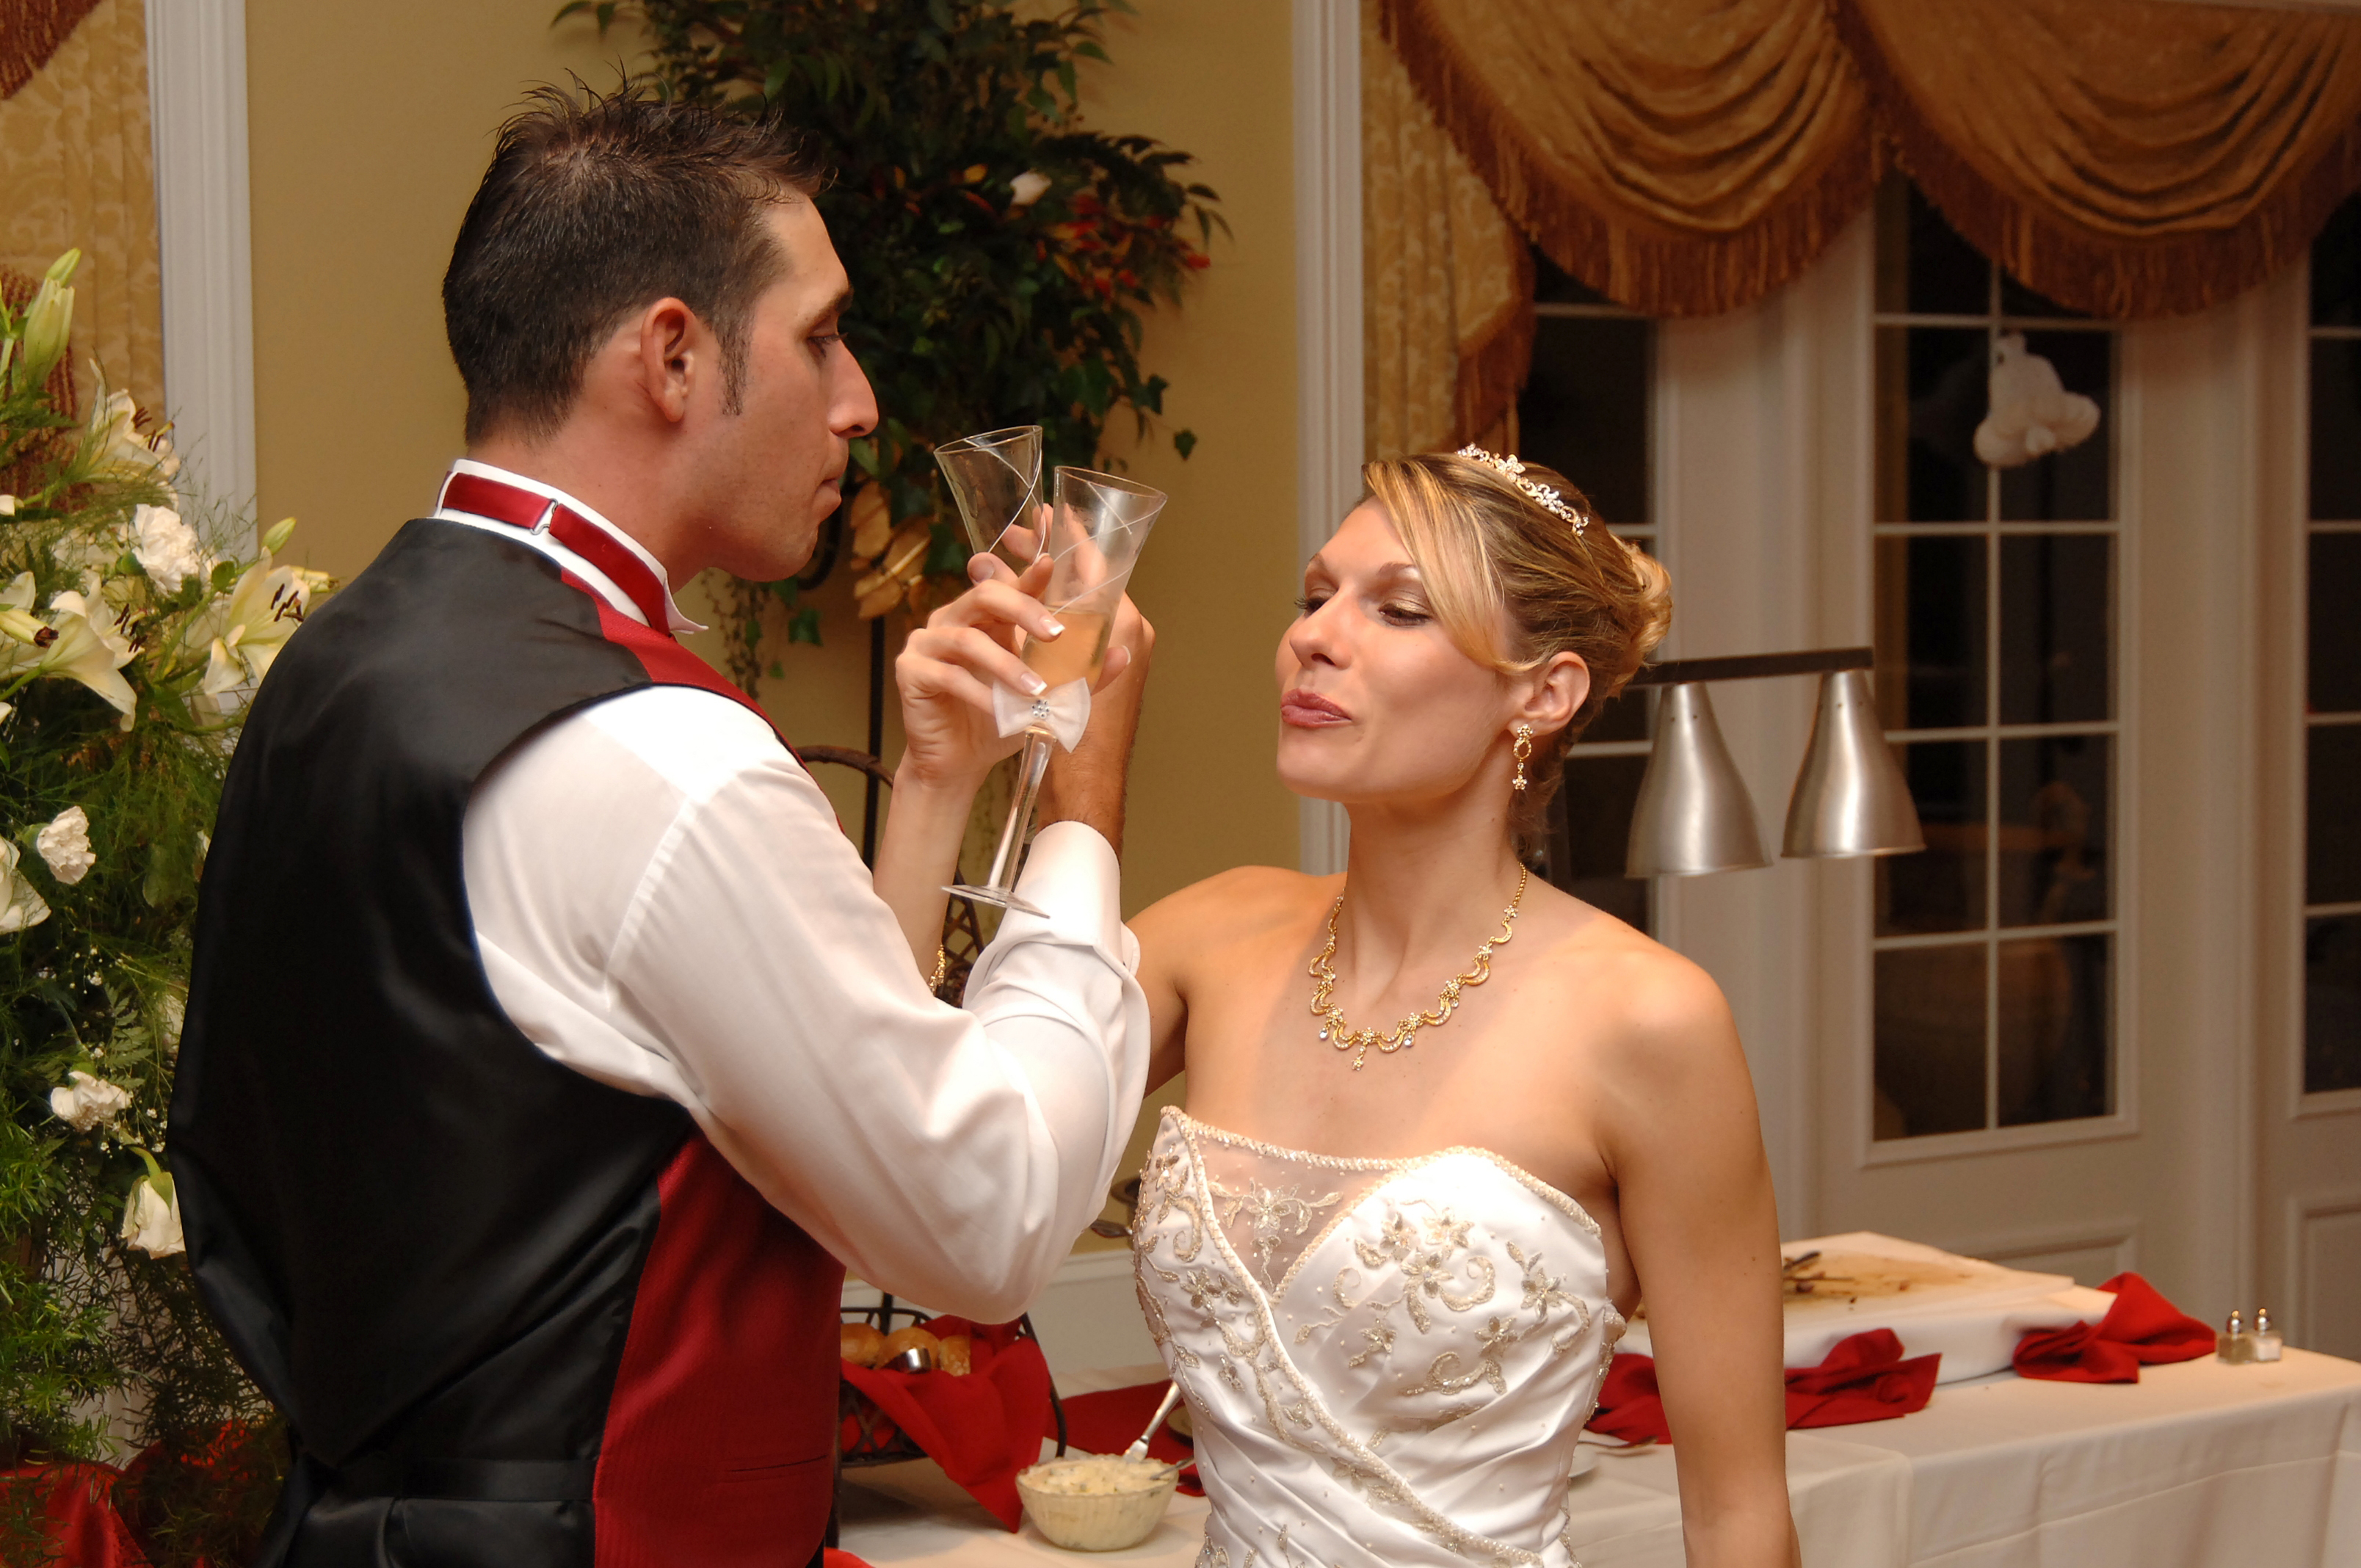 Cheers to the Bride & Groom!